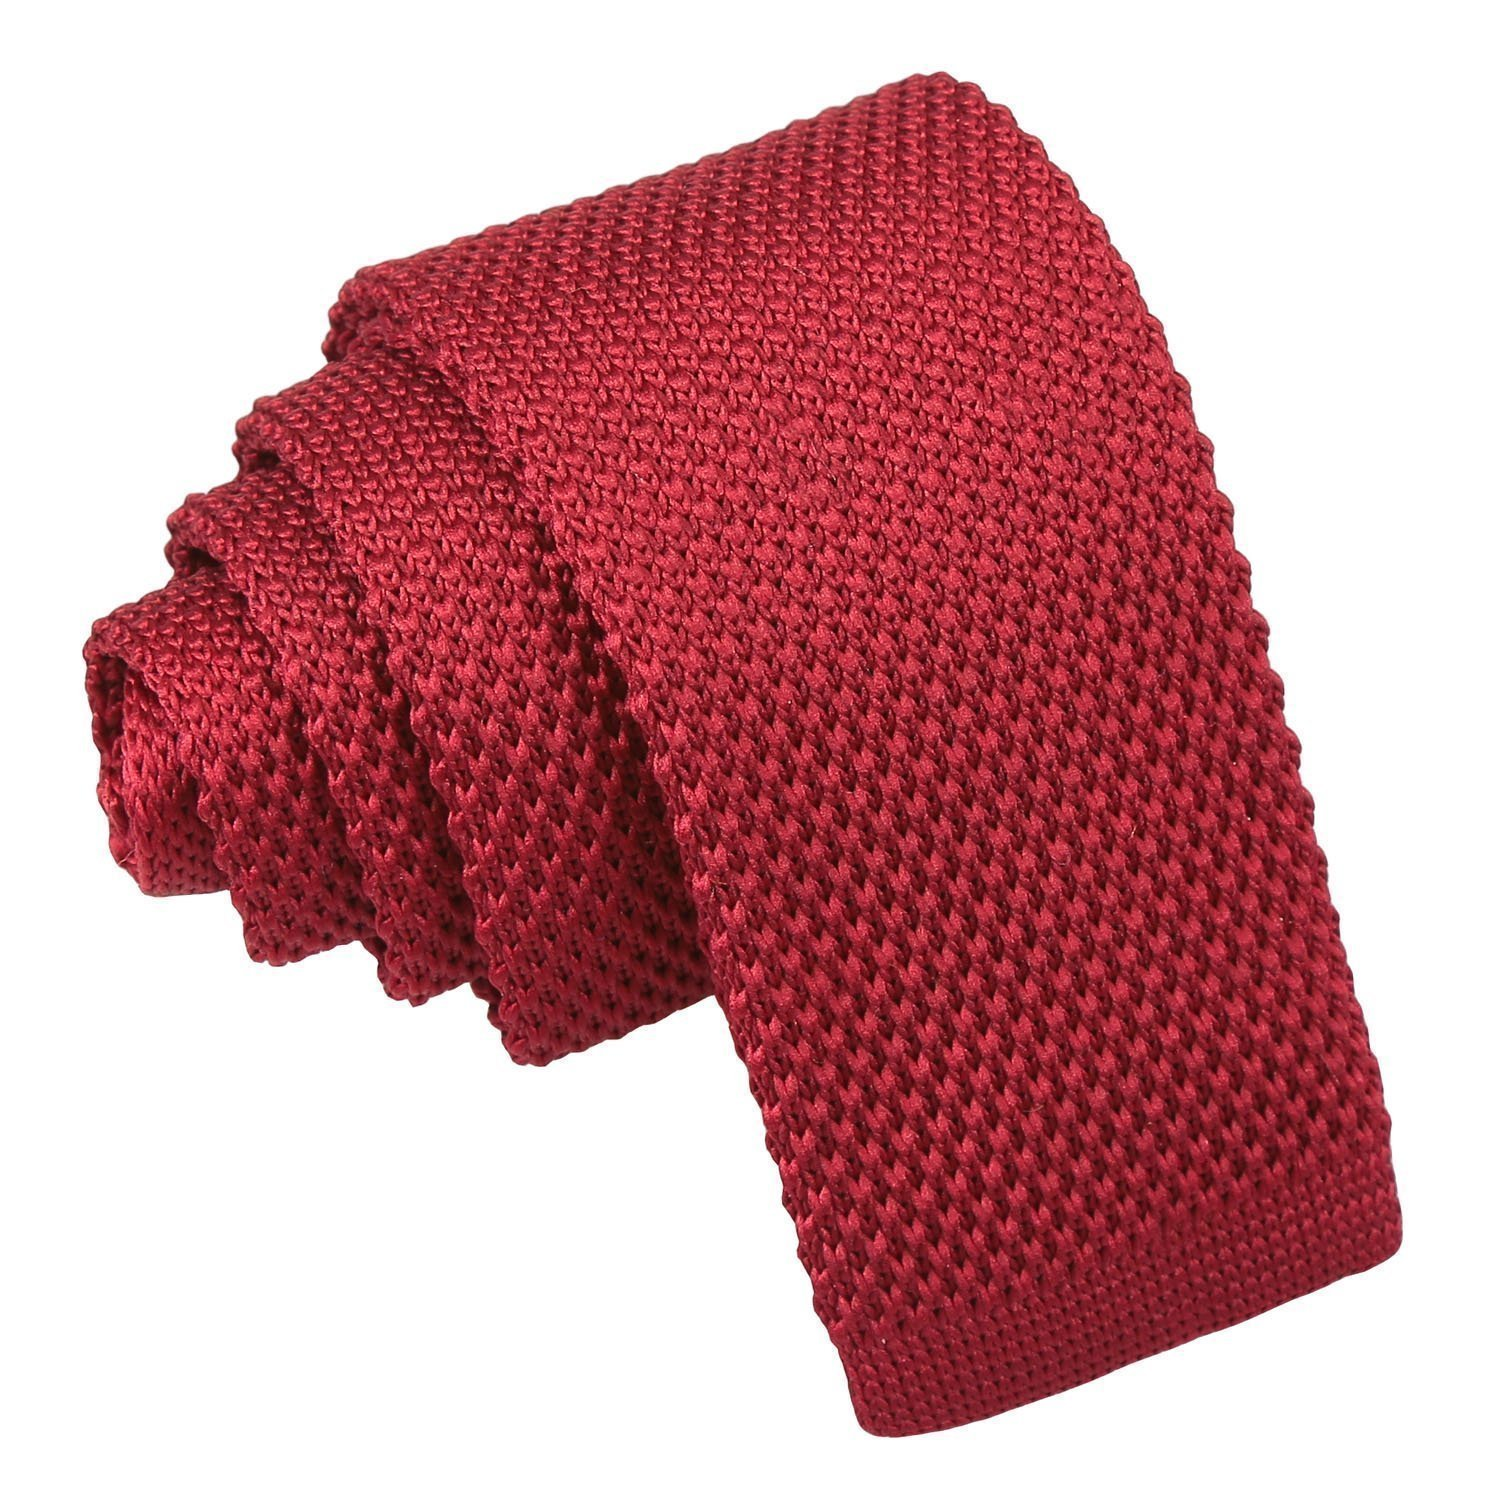 8d735918aecf Burgundy Knitted Tie for Boys